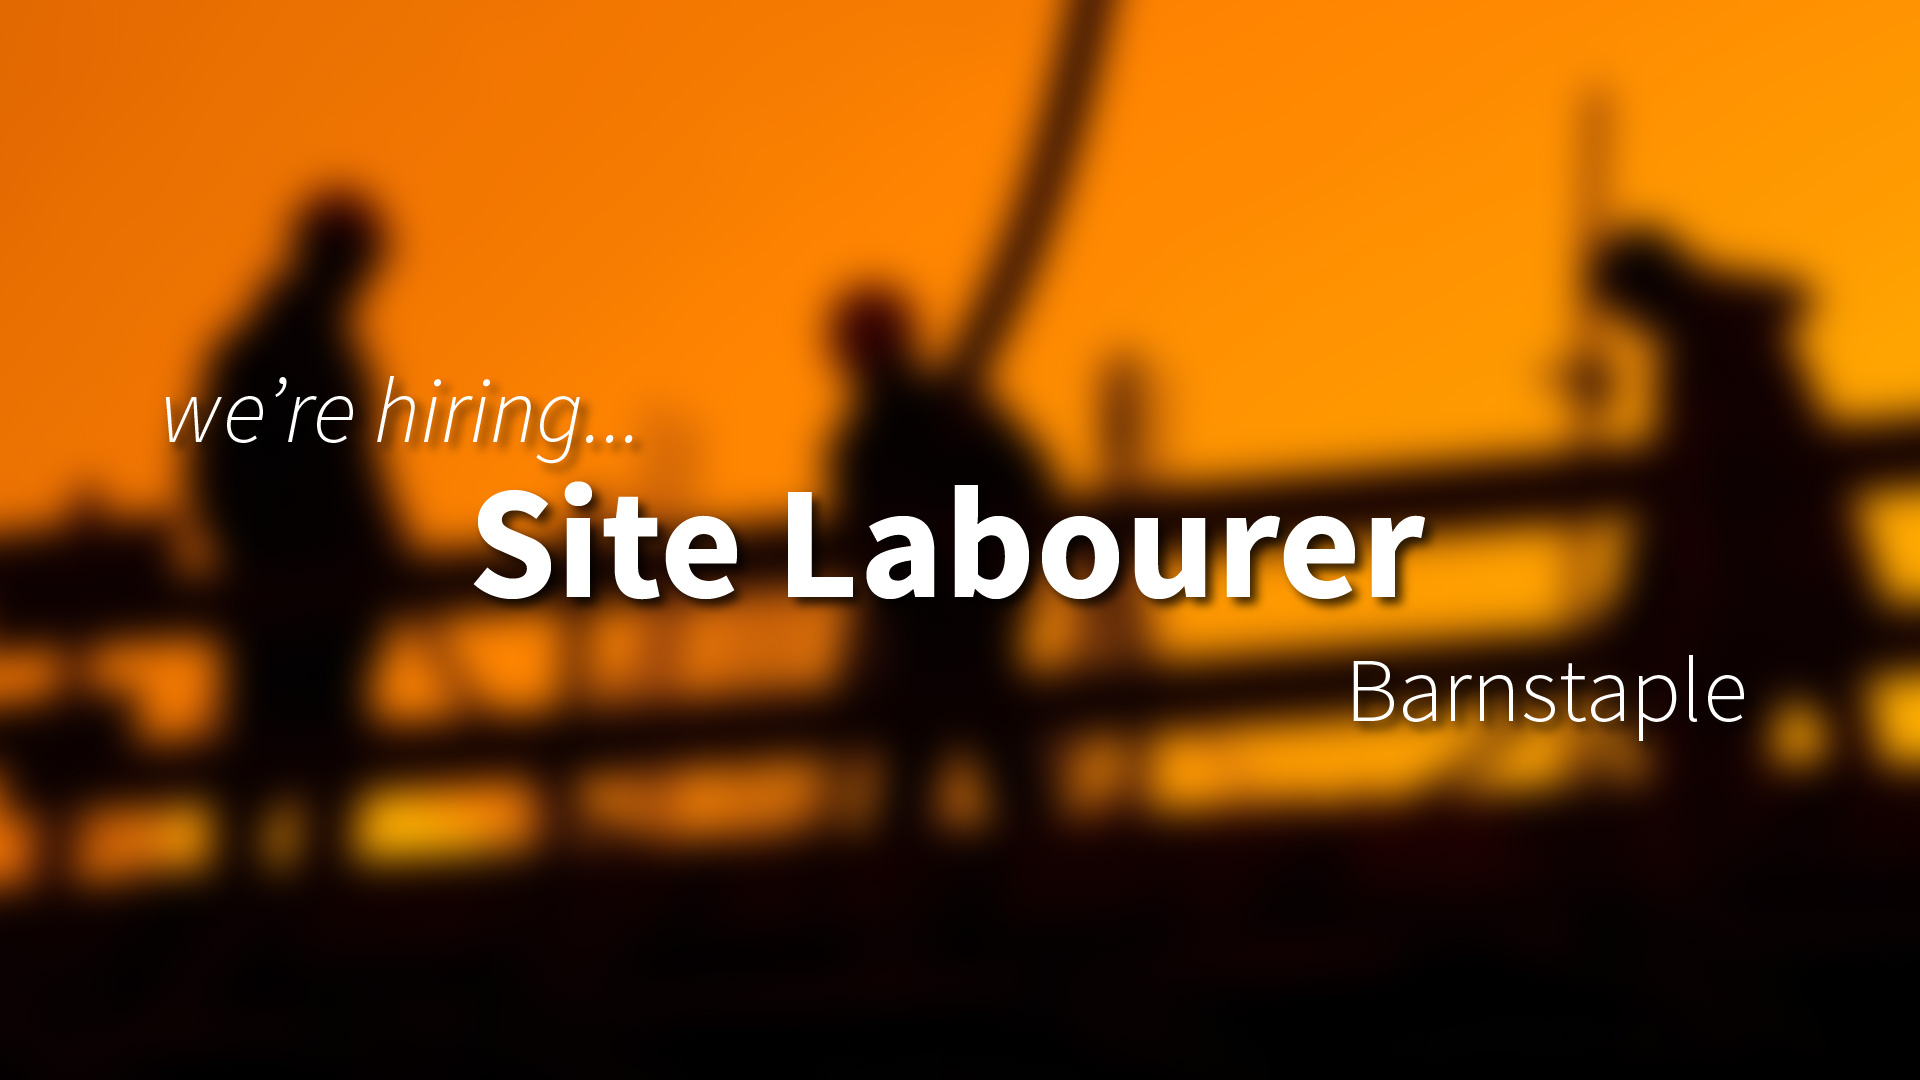 site-labourer-required-recruitment